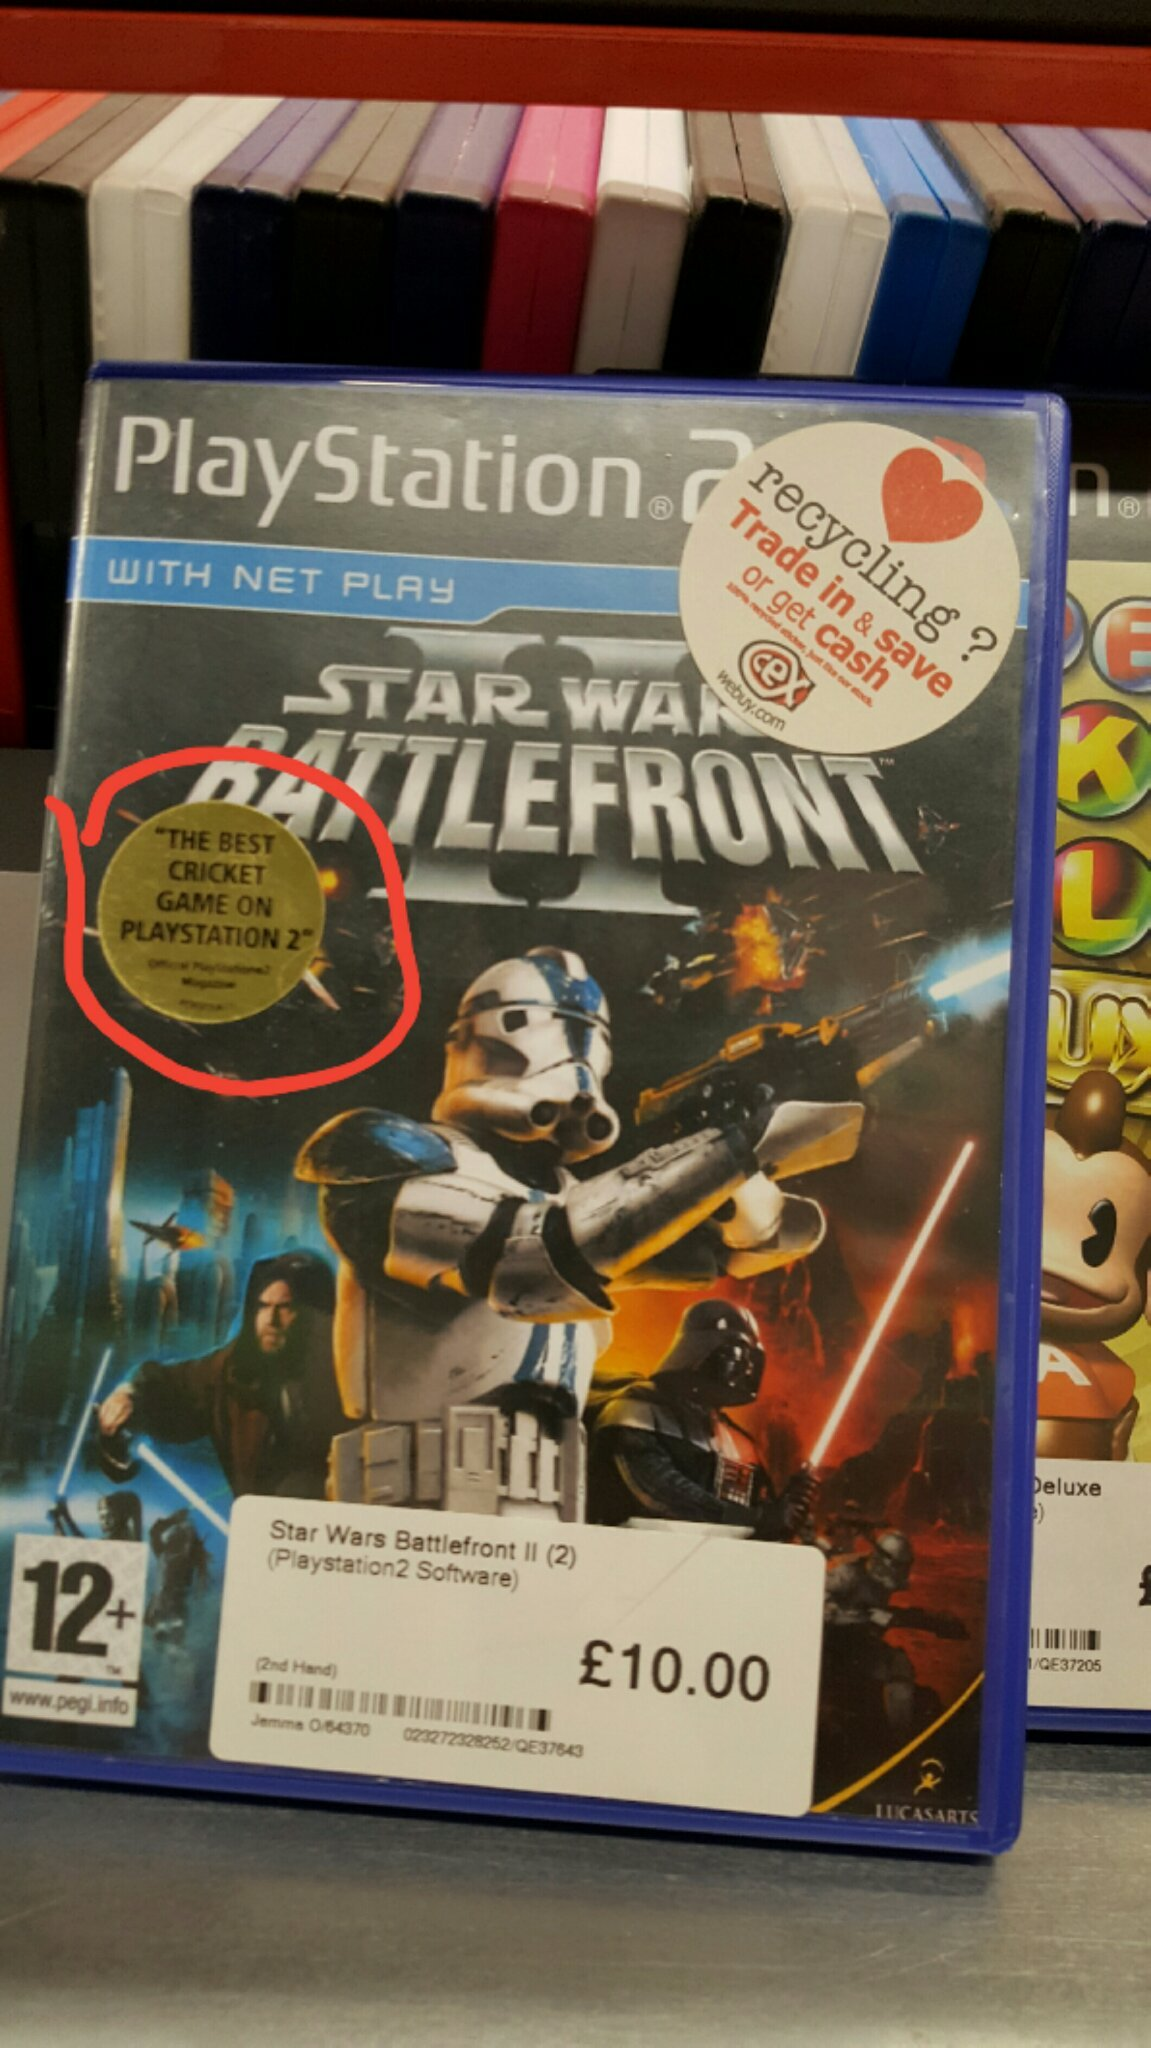 Saw this In cex... Battlefront 2 is best cricket game. - meme